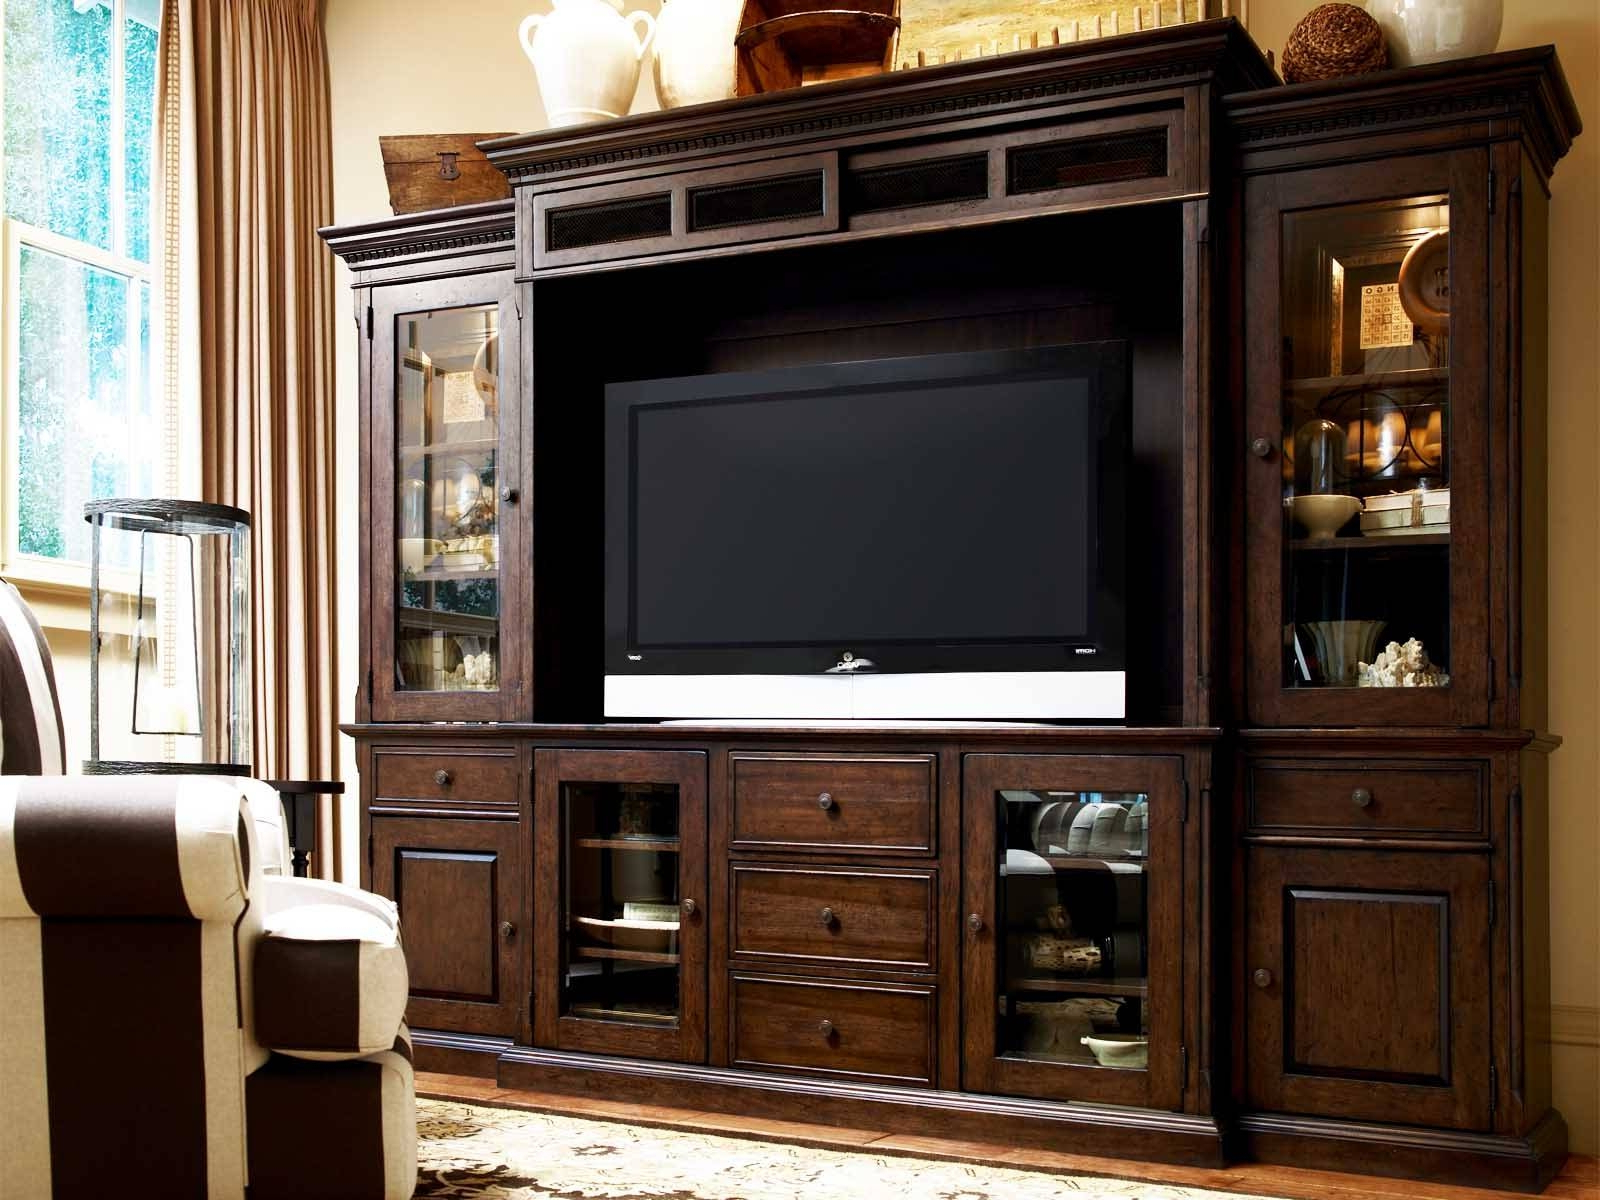 Glass Tv Cabinets With Doors In Well Known Wooden Tv Cabinet Tv Cabinet With Glass Doors Filing Cabinets Argos (View 4 of 20)